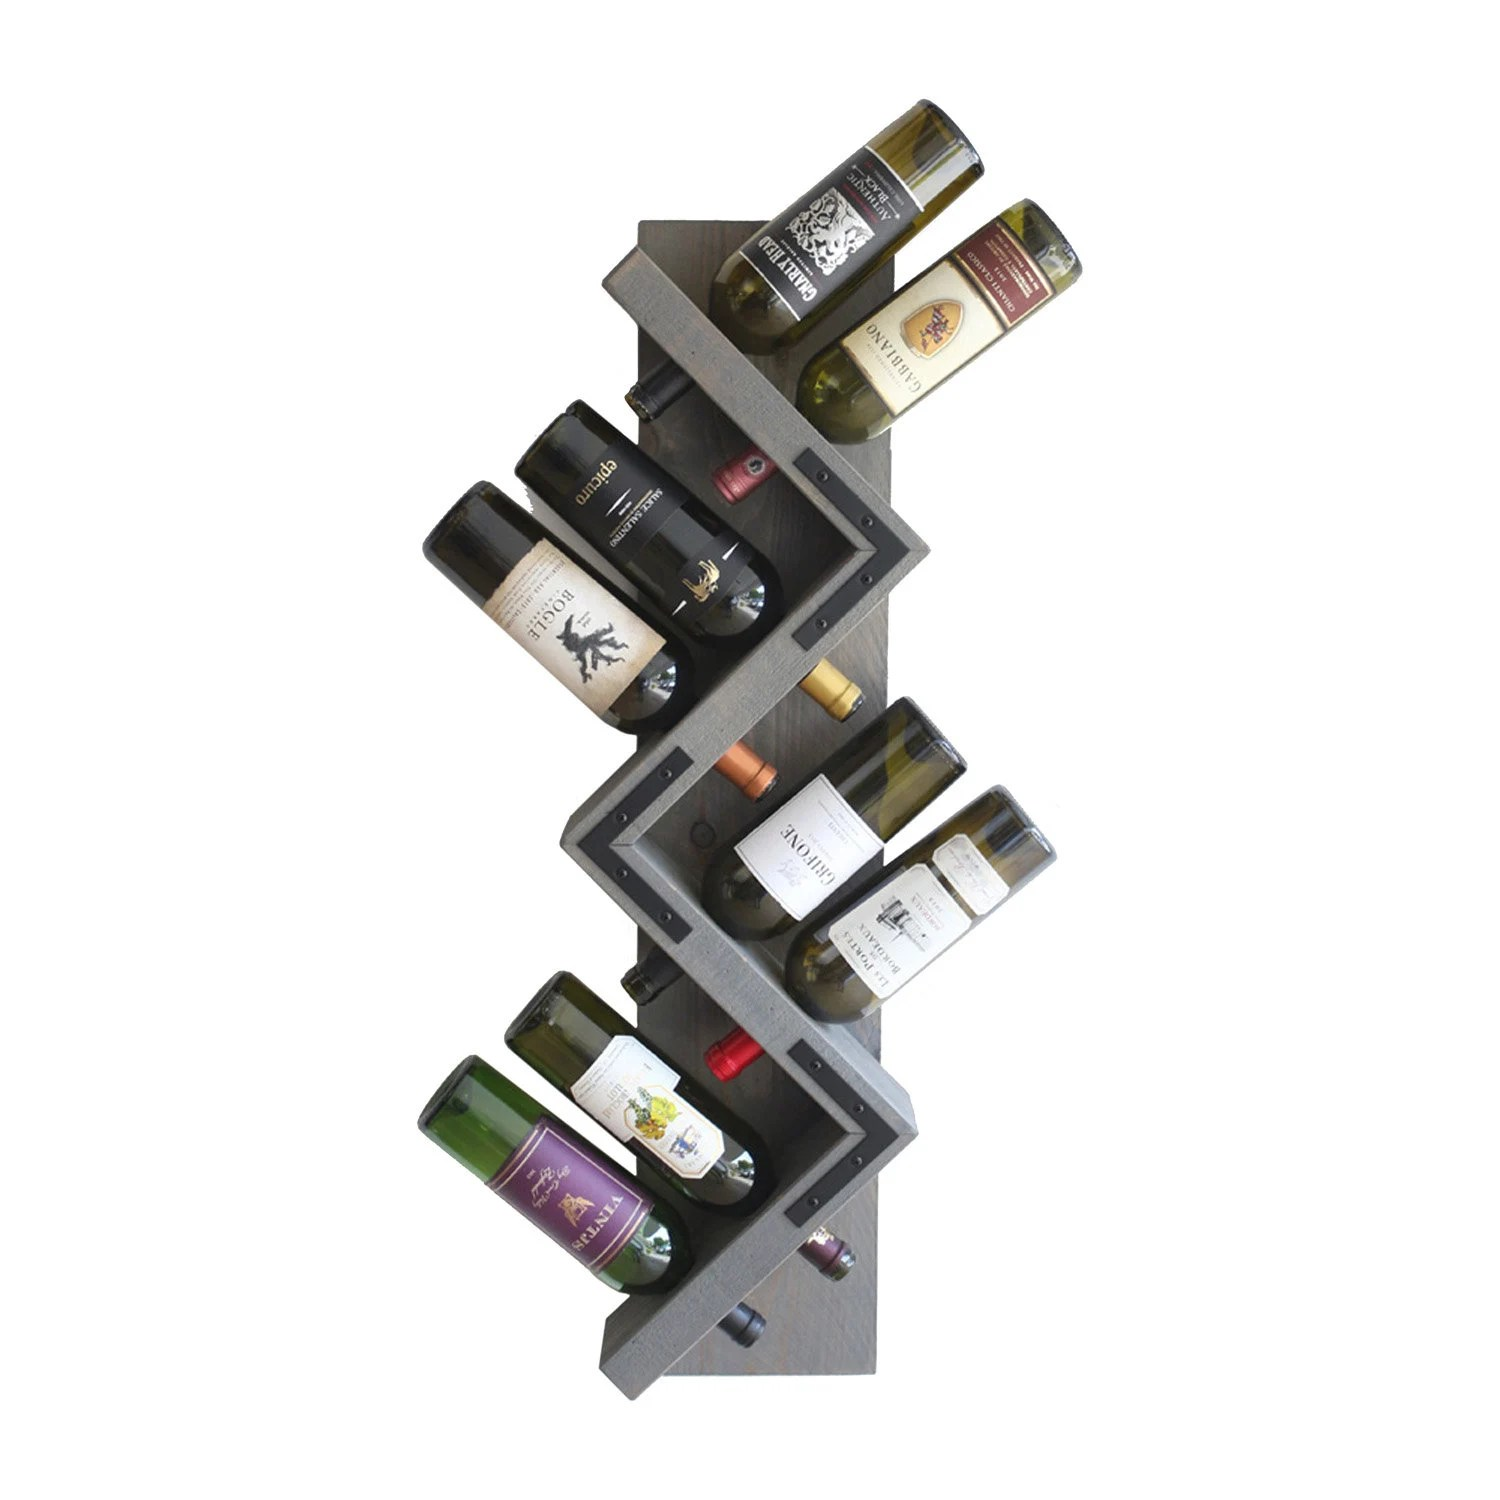 Diy Range Bouteille Zig Zag Wine Rack Rustic Wood Wall Mounted Wine Bottle Display Wine Bottle Storage Holder Vertical Wine Rack